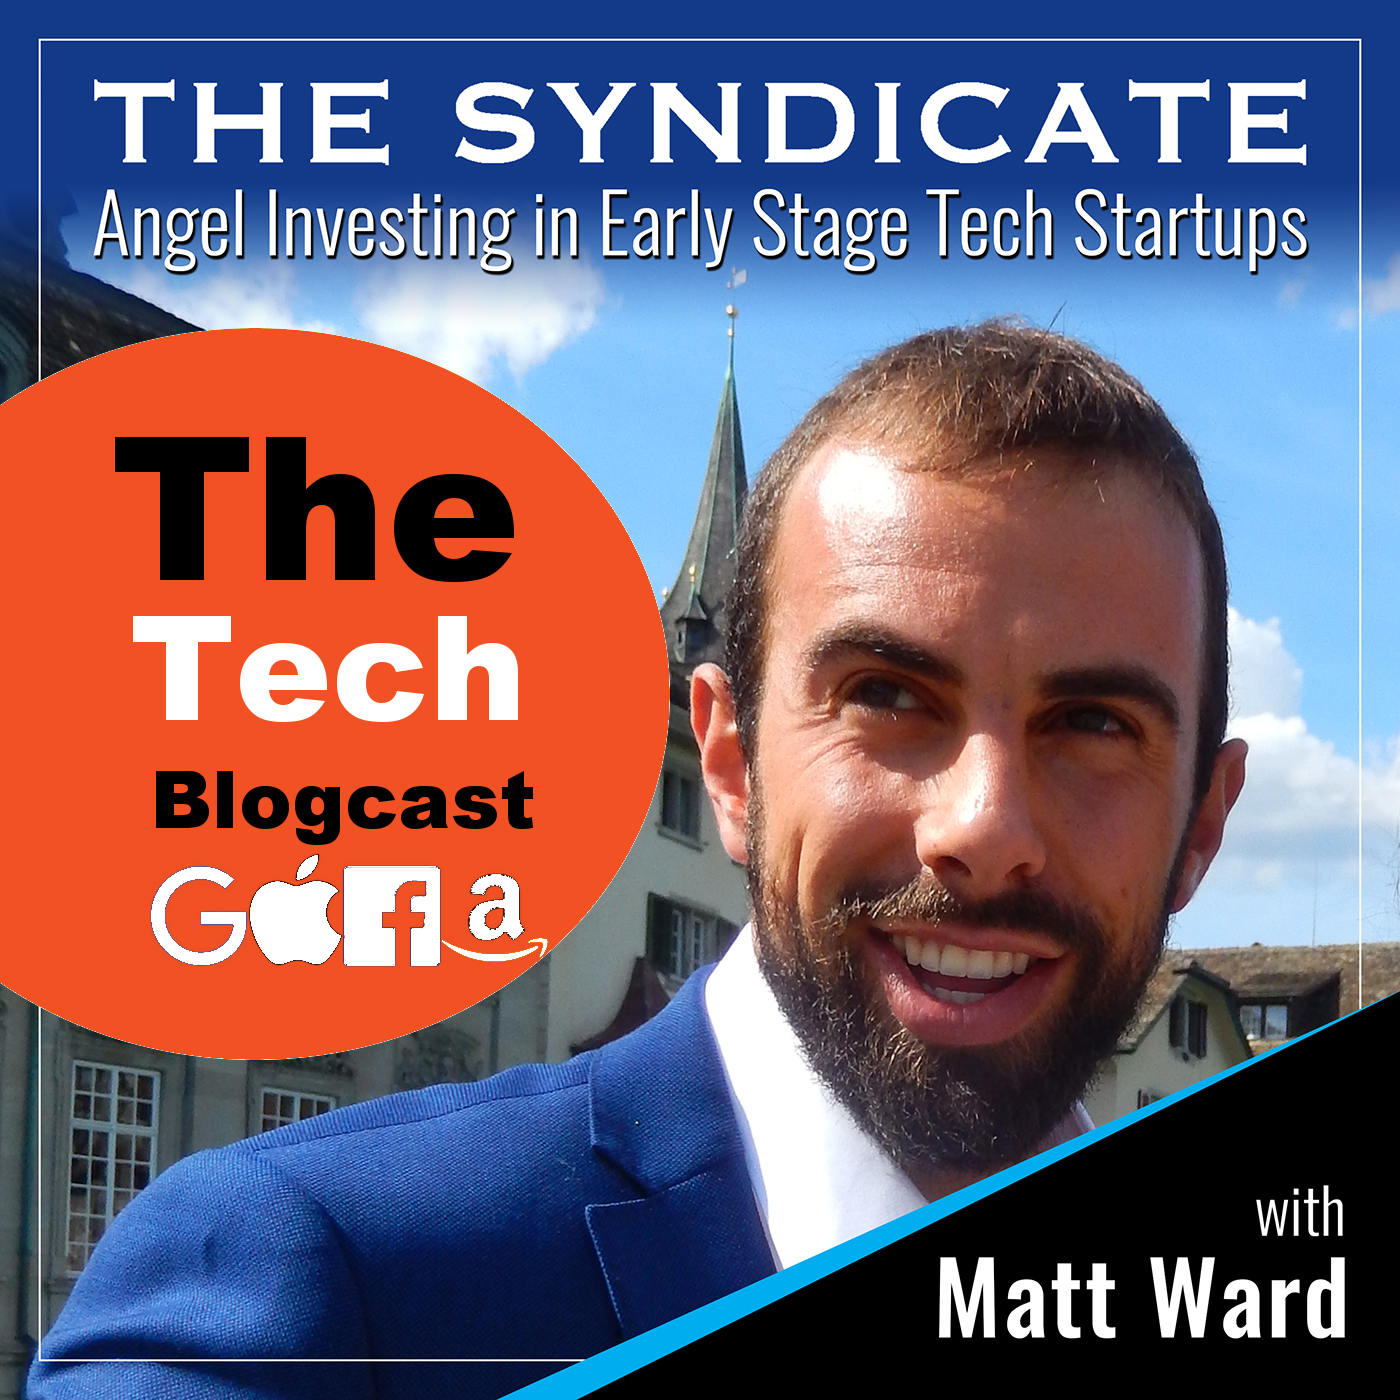 The Syndicate Blogcast: Startups | Startup Investing | Tech News | Angel Investors | VC | Venture Capital | Private Equity | Crowdfunding | Fundraising